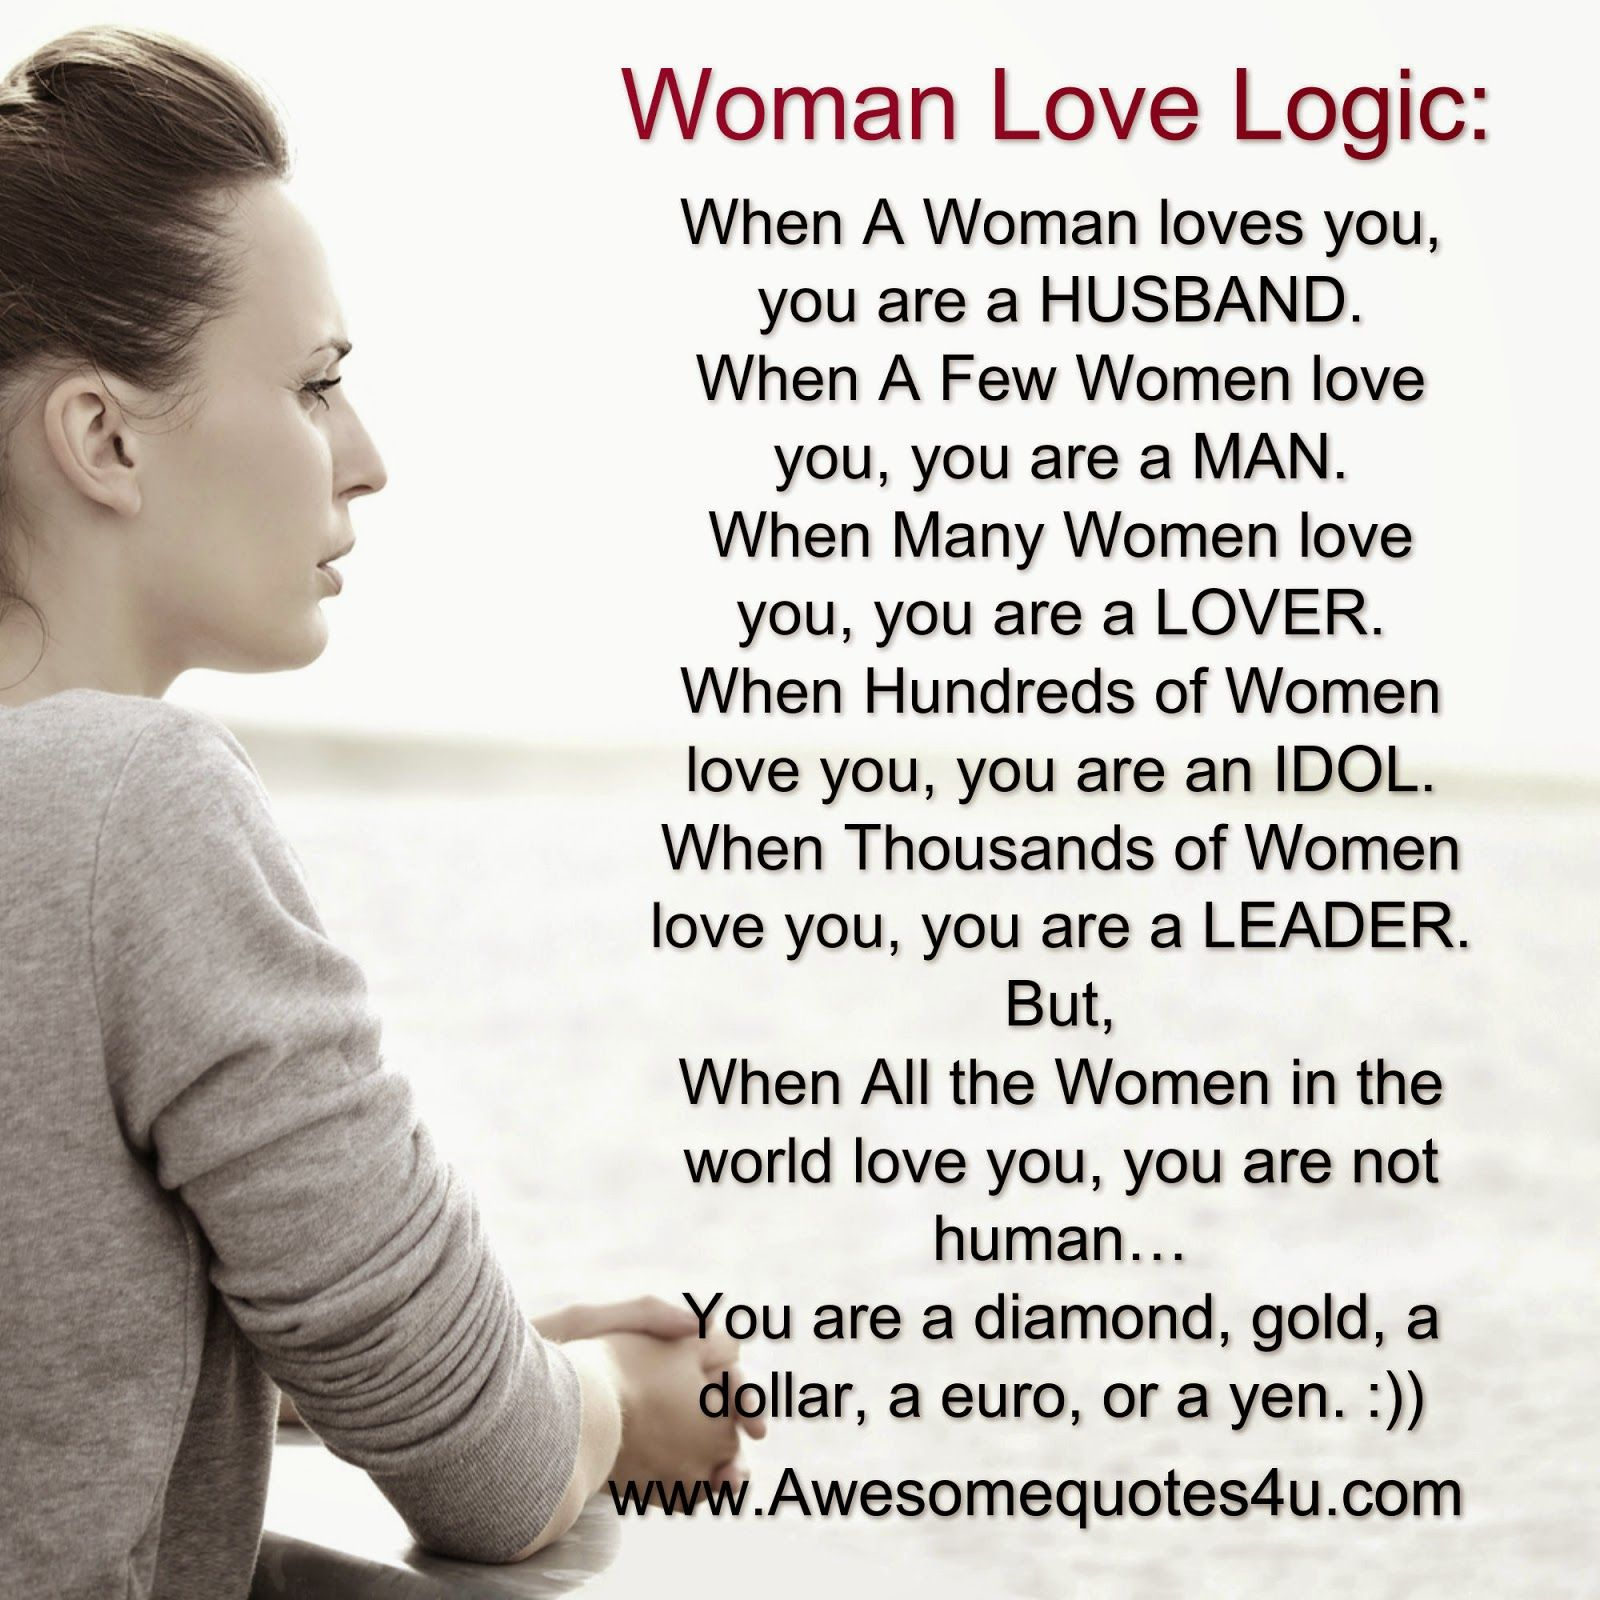 Woman logic relationship